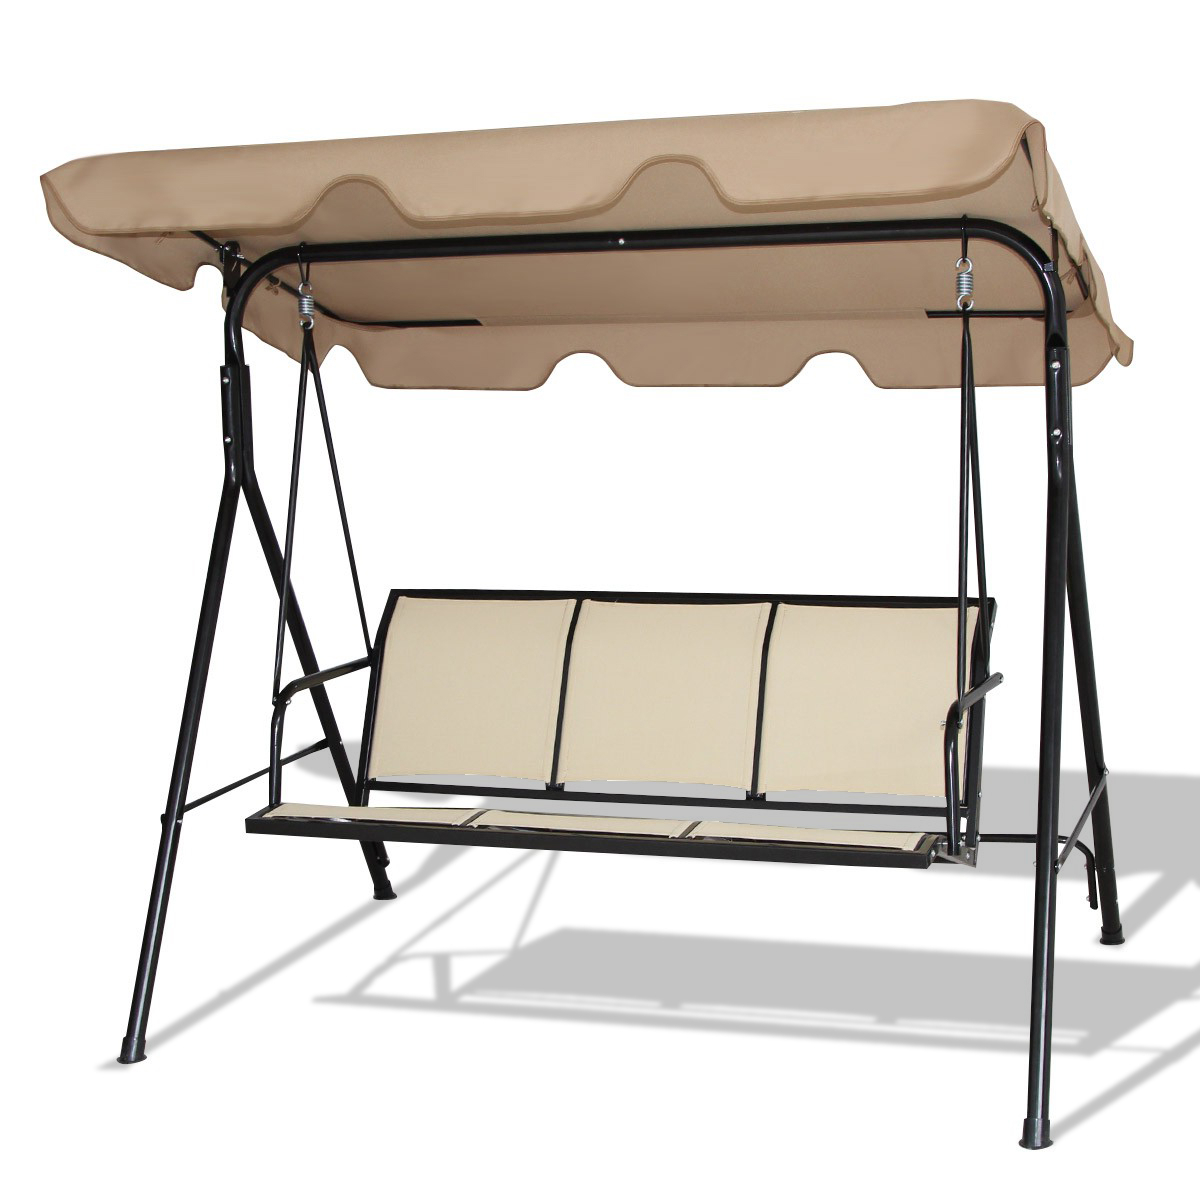 3 Seats Patio Canopy Swing Gliders Hammock Cushioned Steel Frame For Favorite Outdoor Patio 3 Person Porch Swing Bench Chair With Canopy (View 14 of 25)